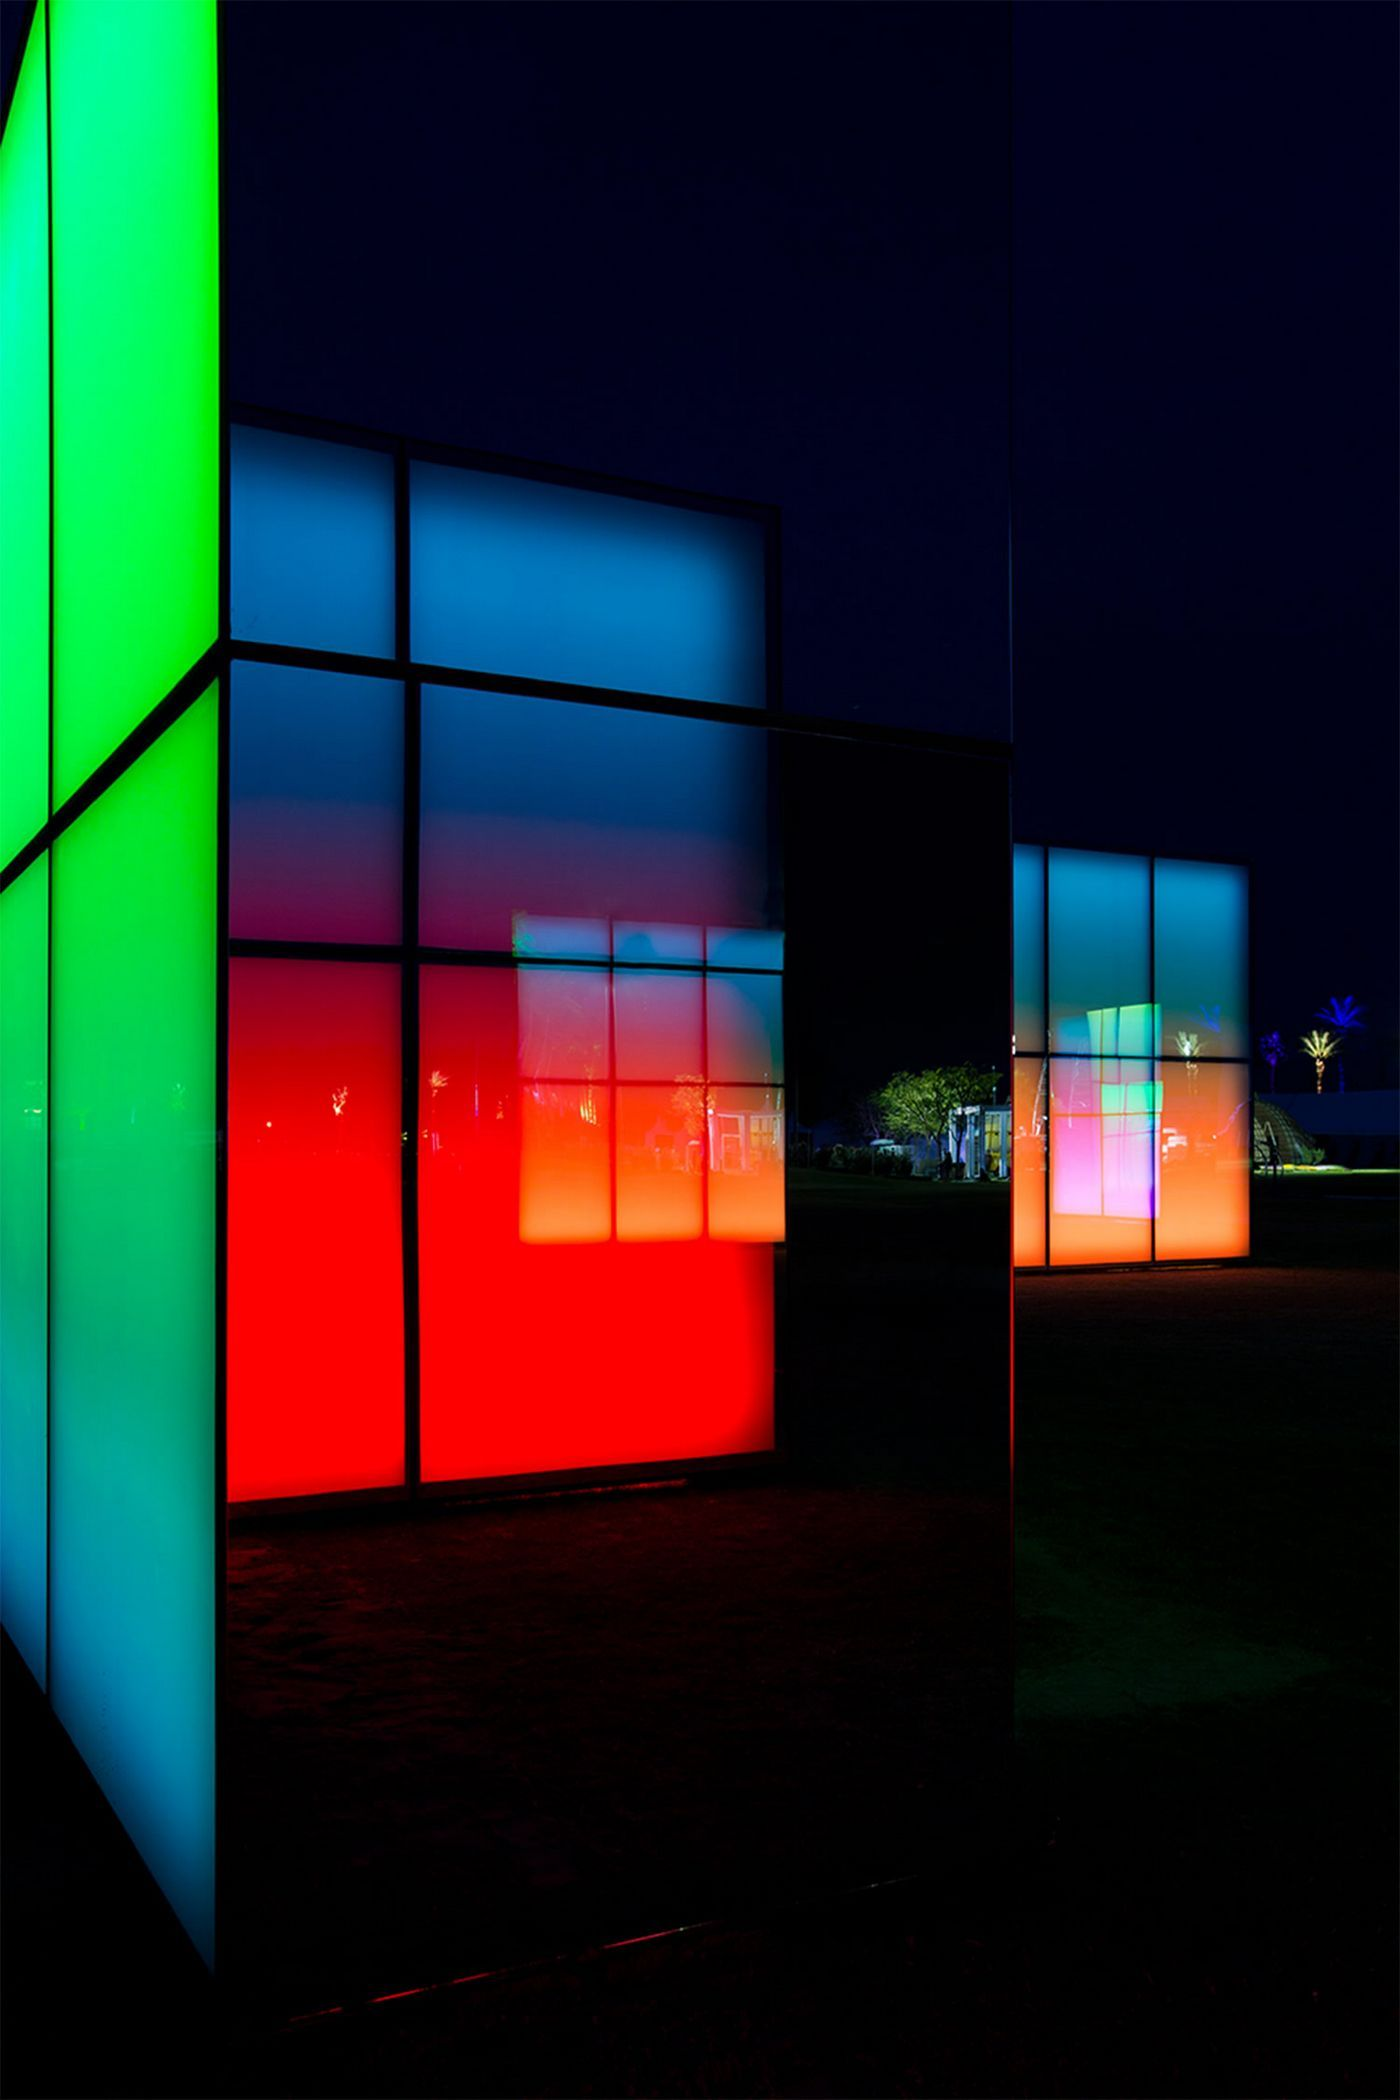 Light Based Project Lucid Stead By Artist Phillip K Smith